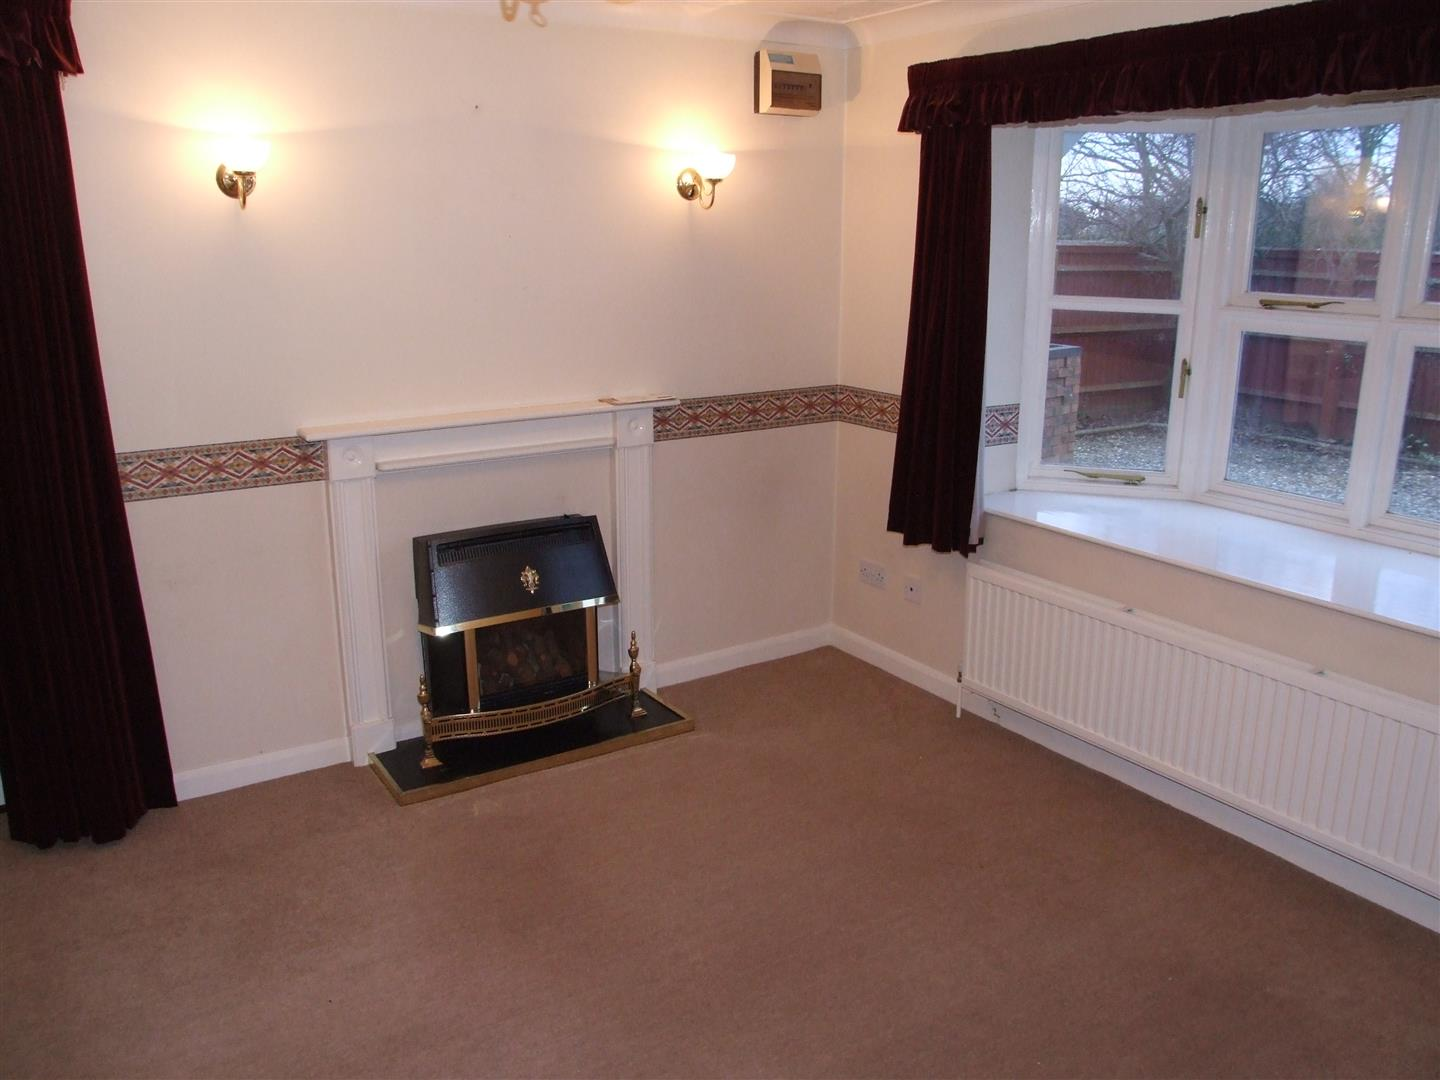 1 bed maisonette to rent in Long Sutton Spalding, PE12 9RR, PE12